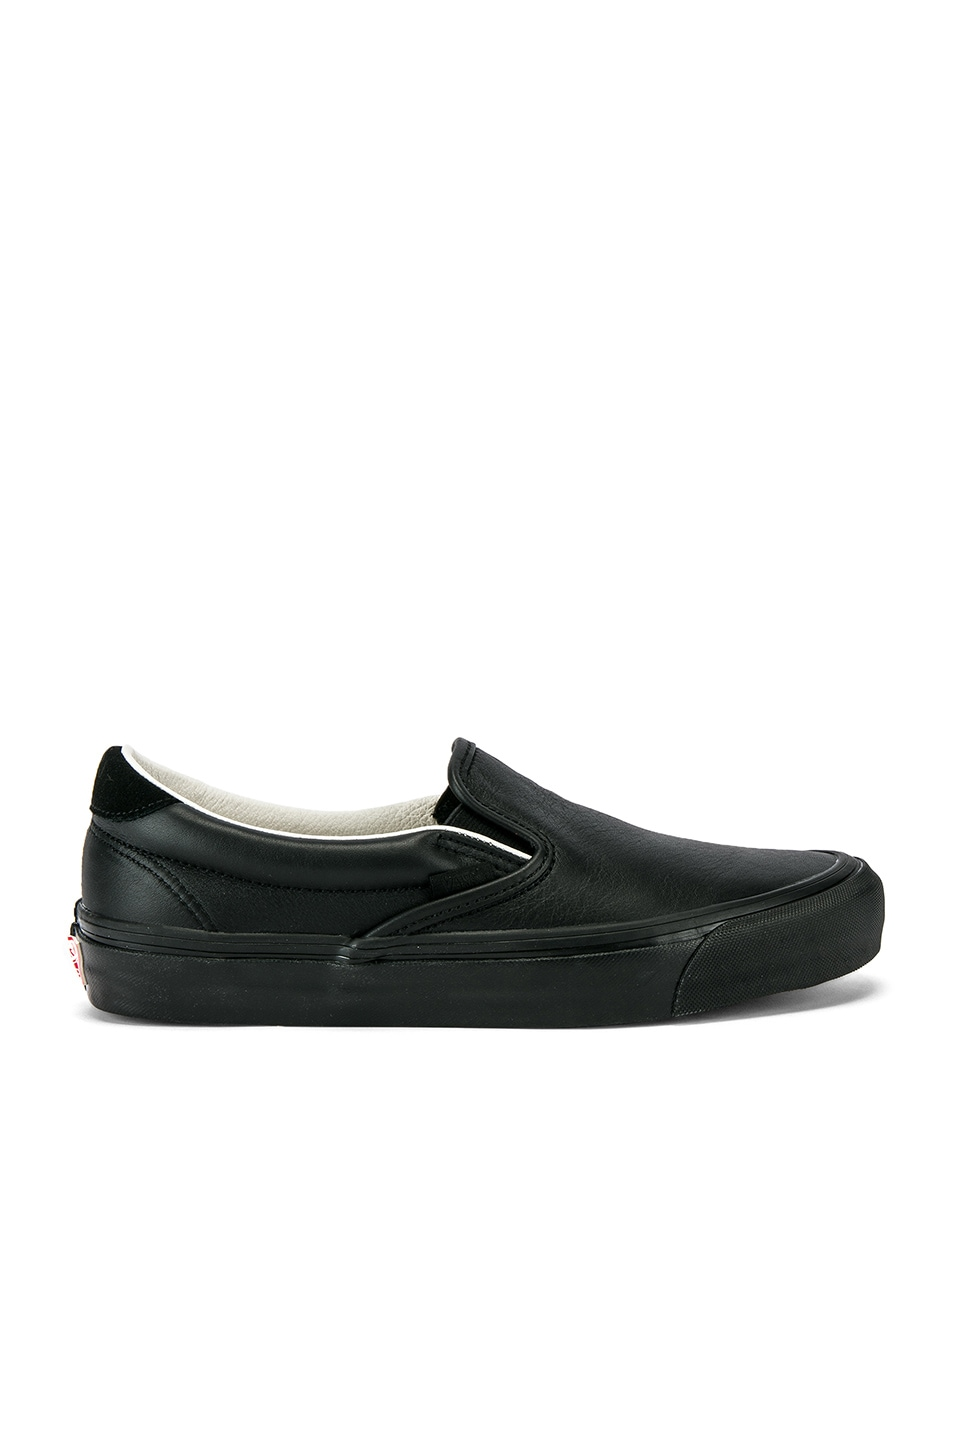 Image 1 of Vans Vault OG Slip-On 59 LX in Black